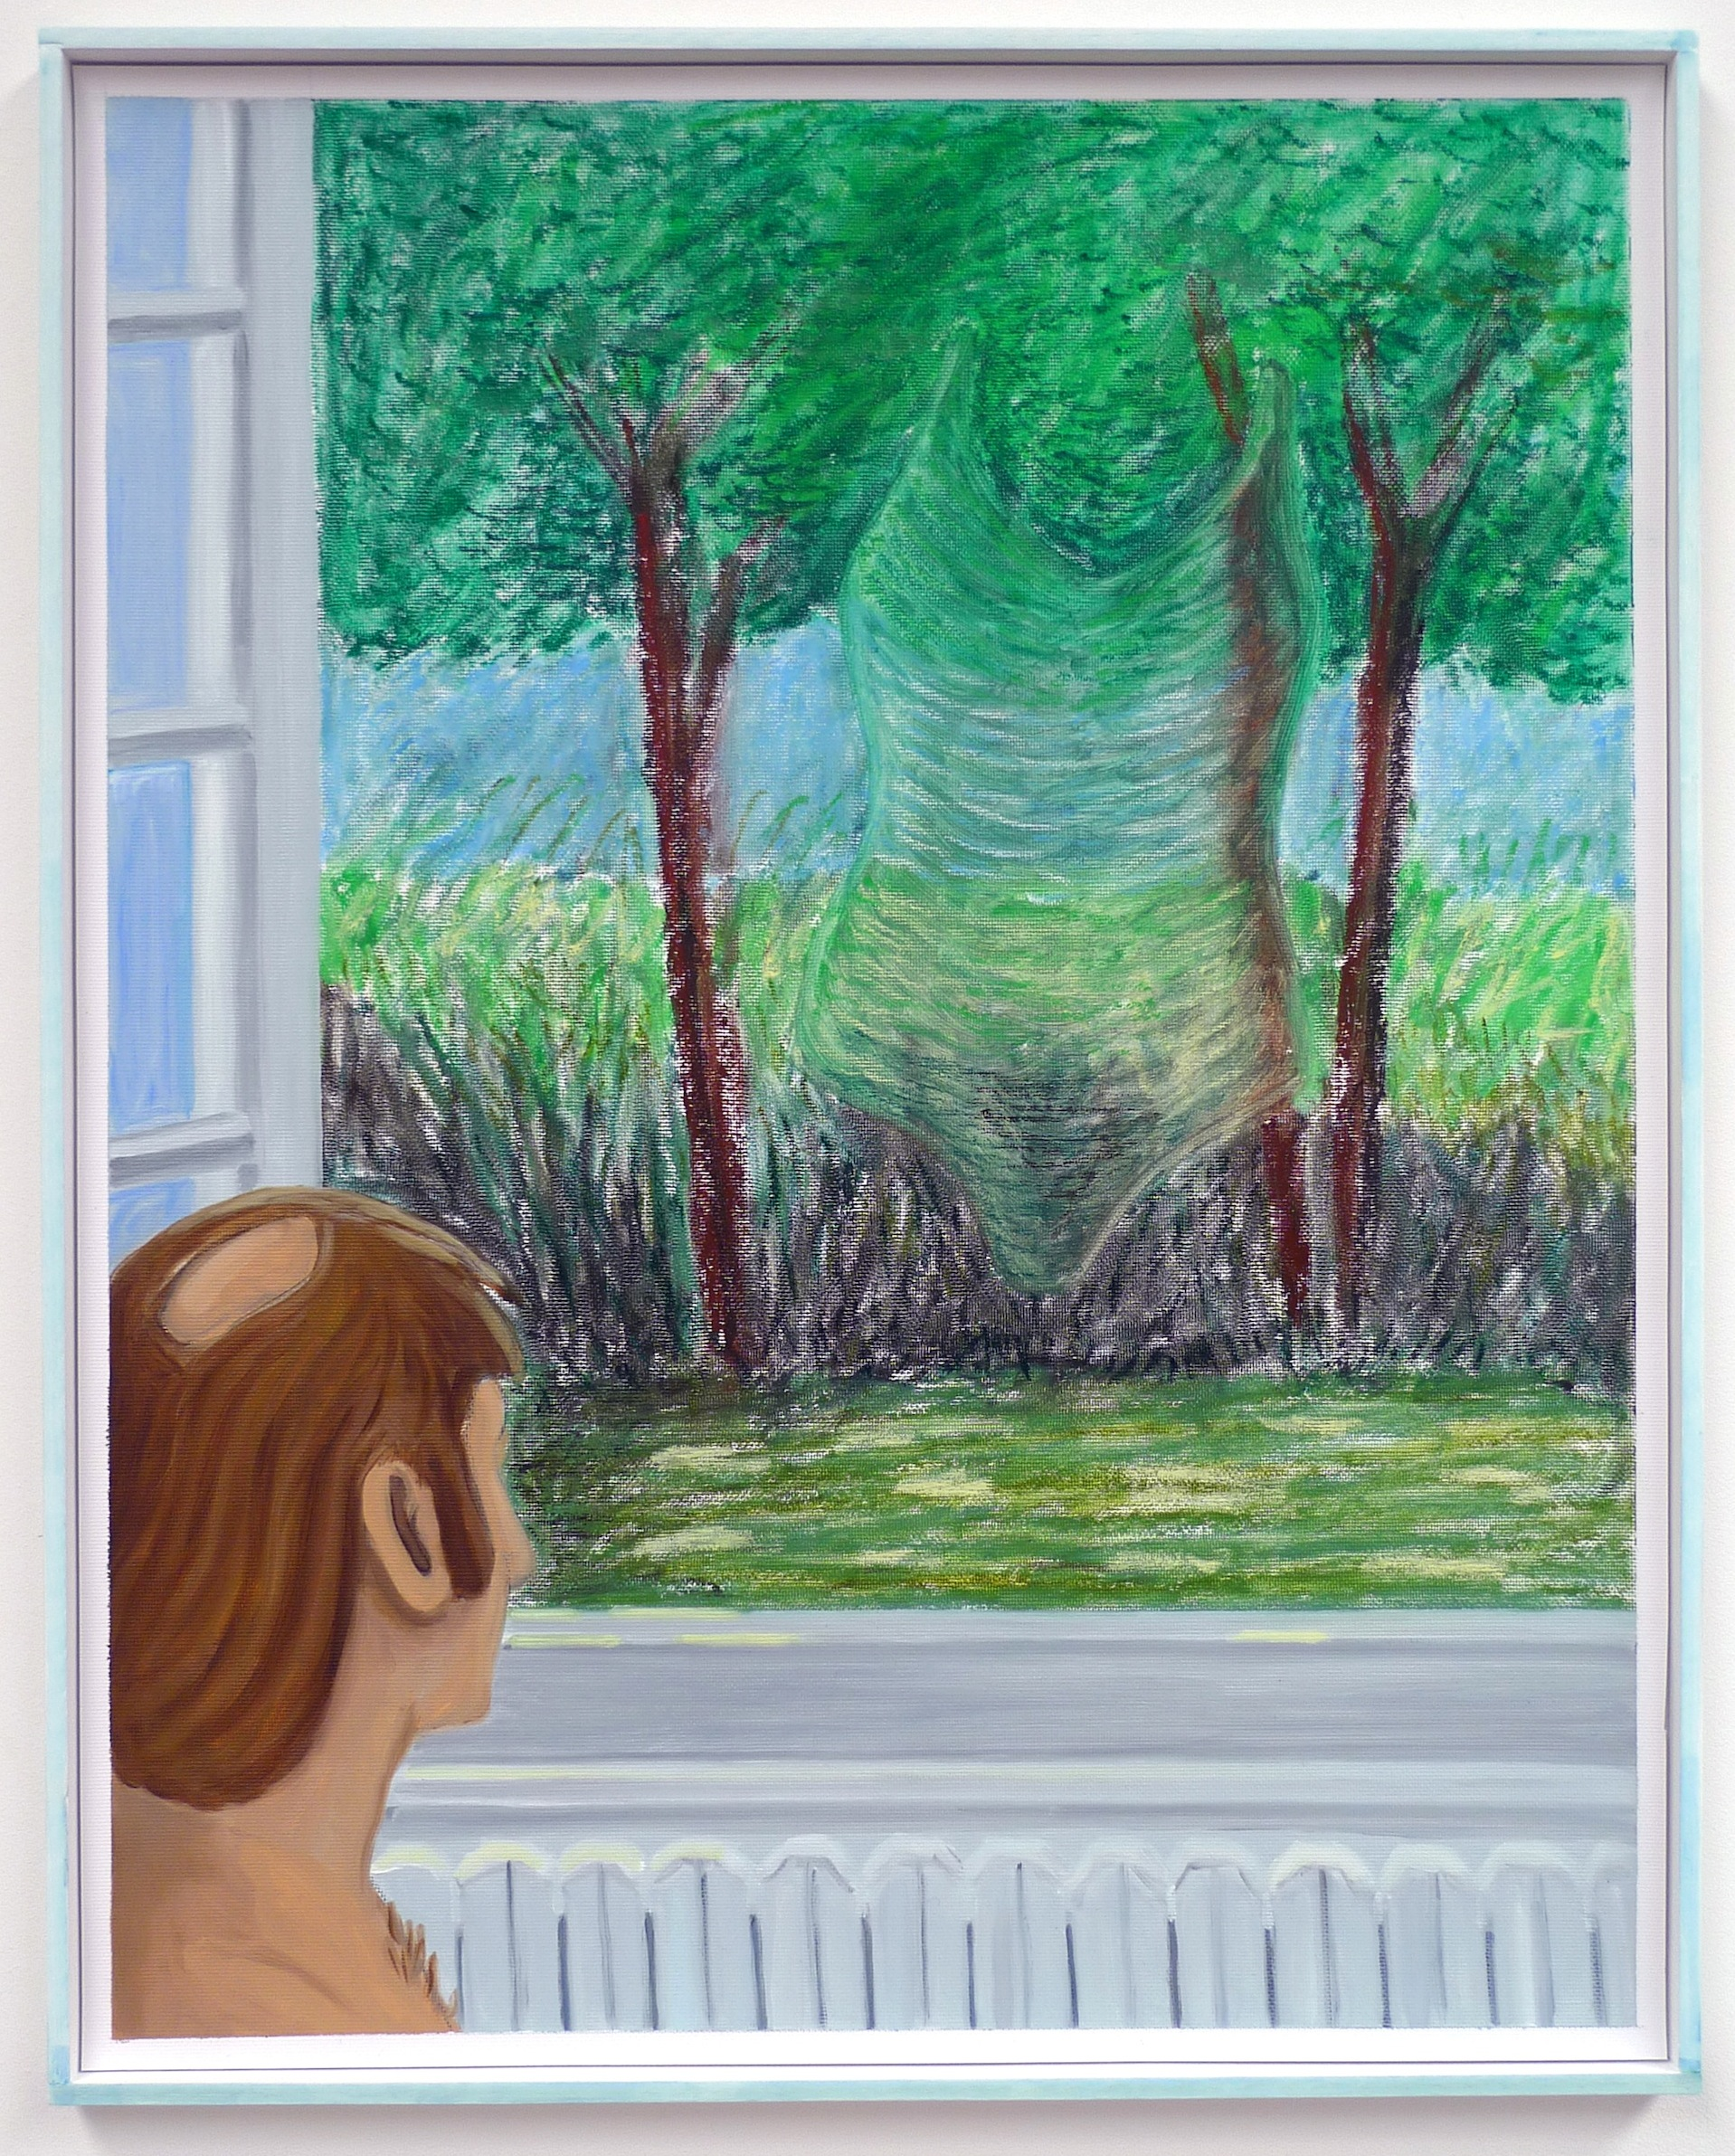 Stephen Stills Visited by the Memory of his Ex-wife  2012 Oil and oil pastel on paper in artist's frame, 51.5 x 41.5 cm